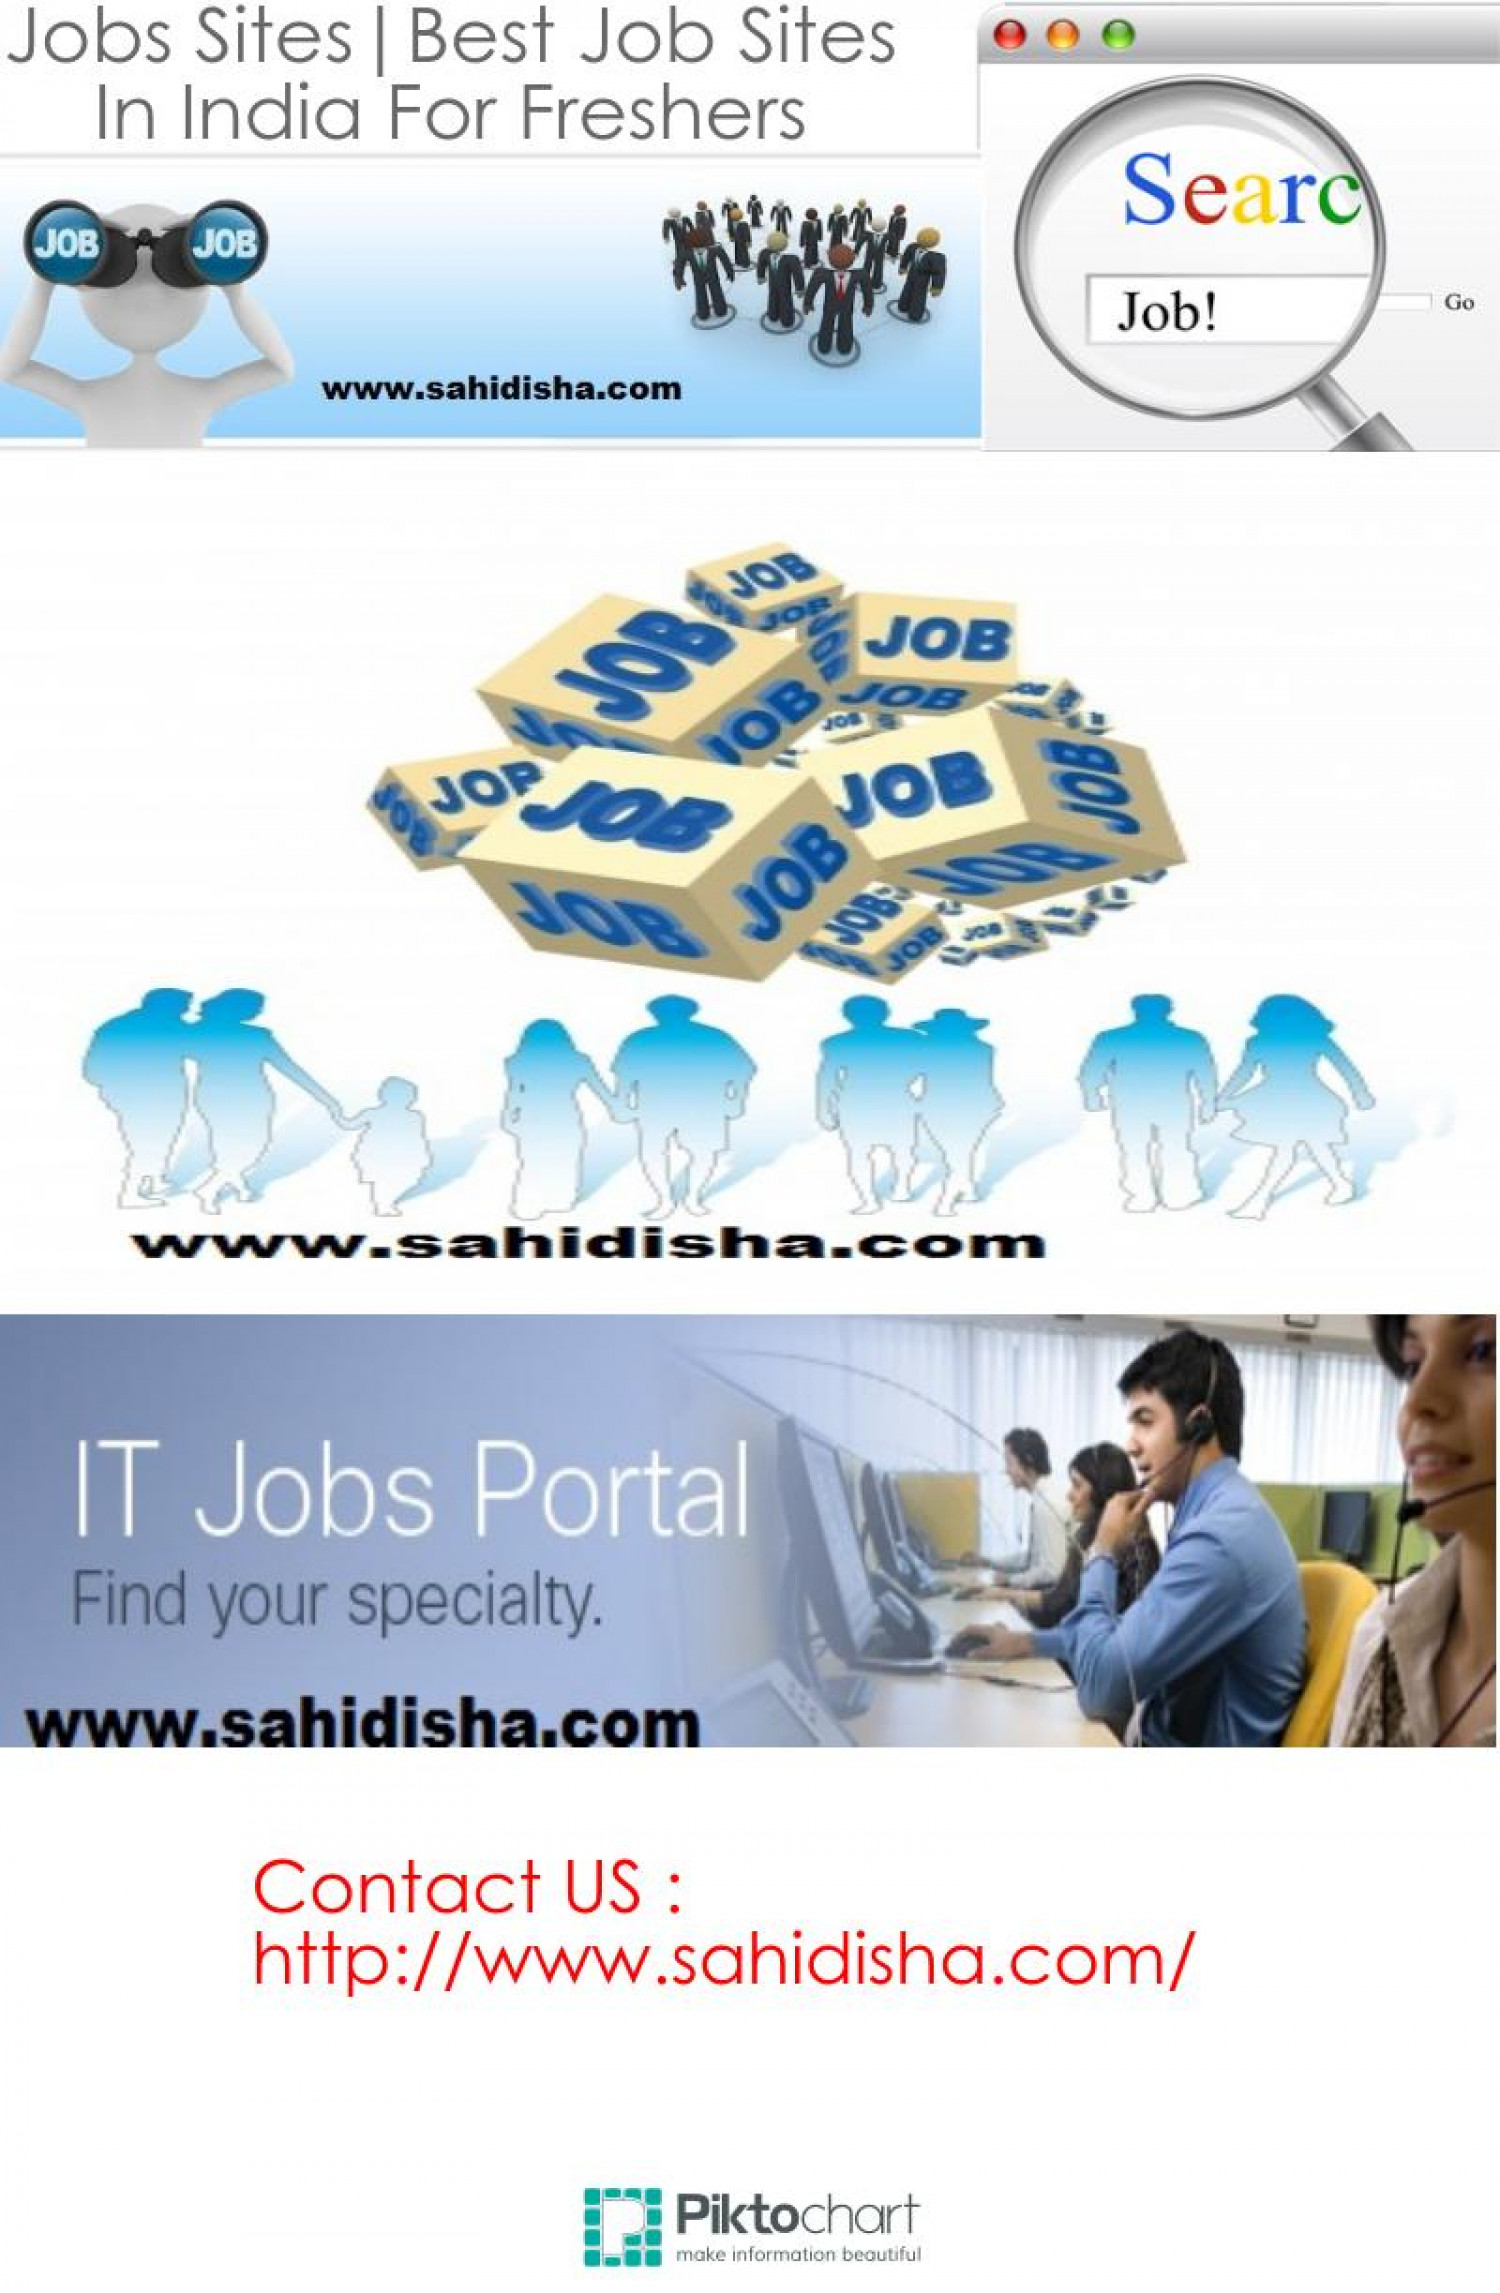 jobs sites best job sites in for freshers ly jobs sites best job sites in for freshers infographic